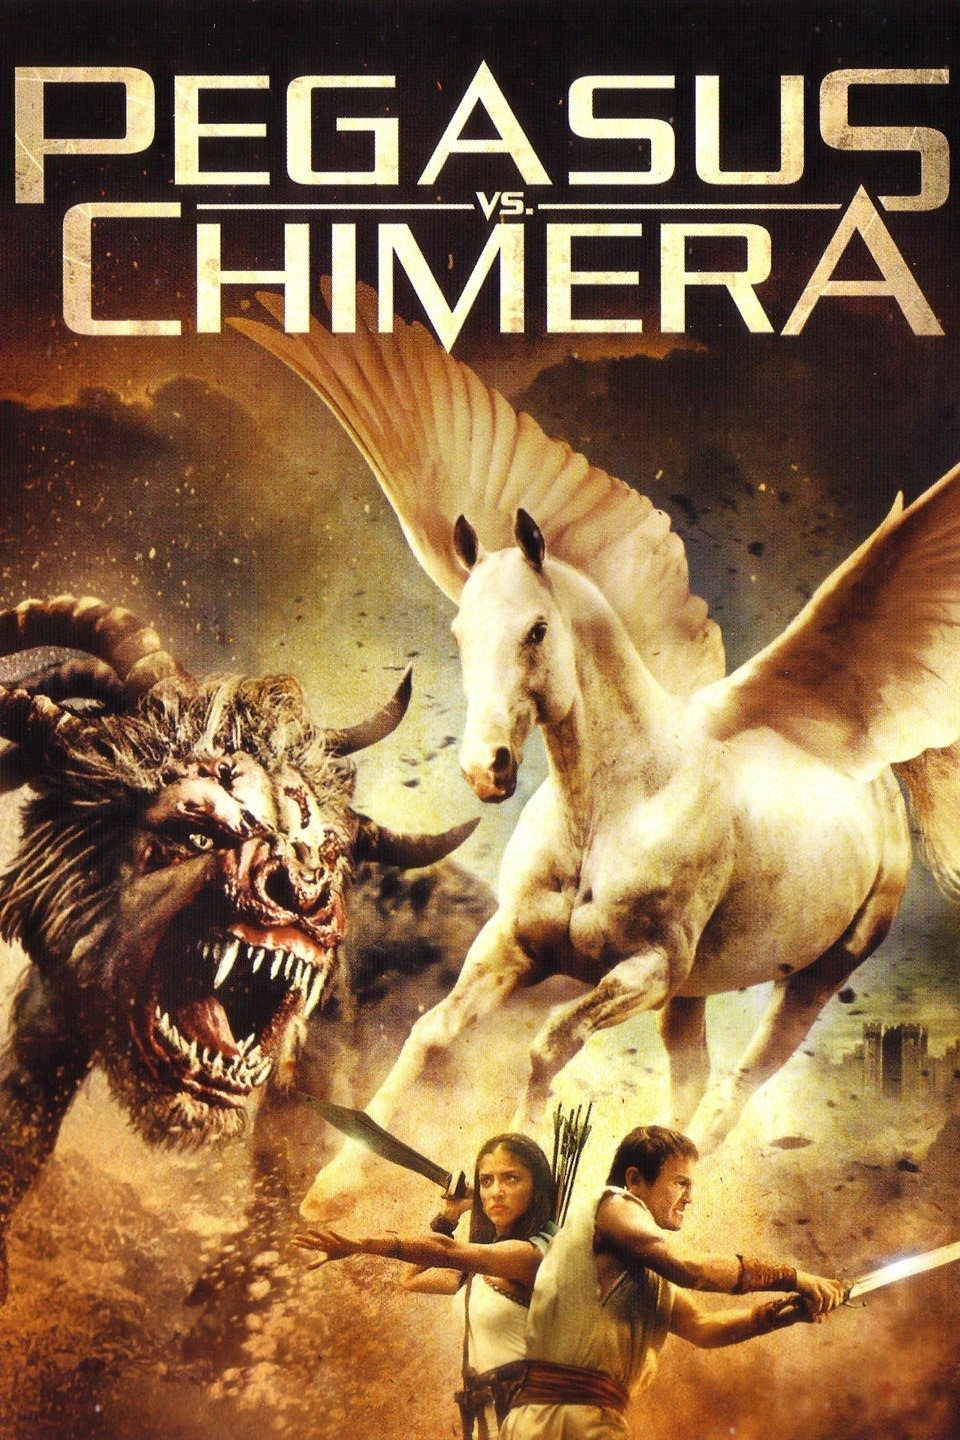 Download Pegasus Vs. Chimera 2012 Hindi Dual Audio 480p | 720p